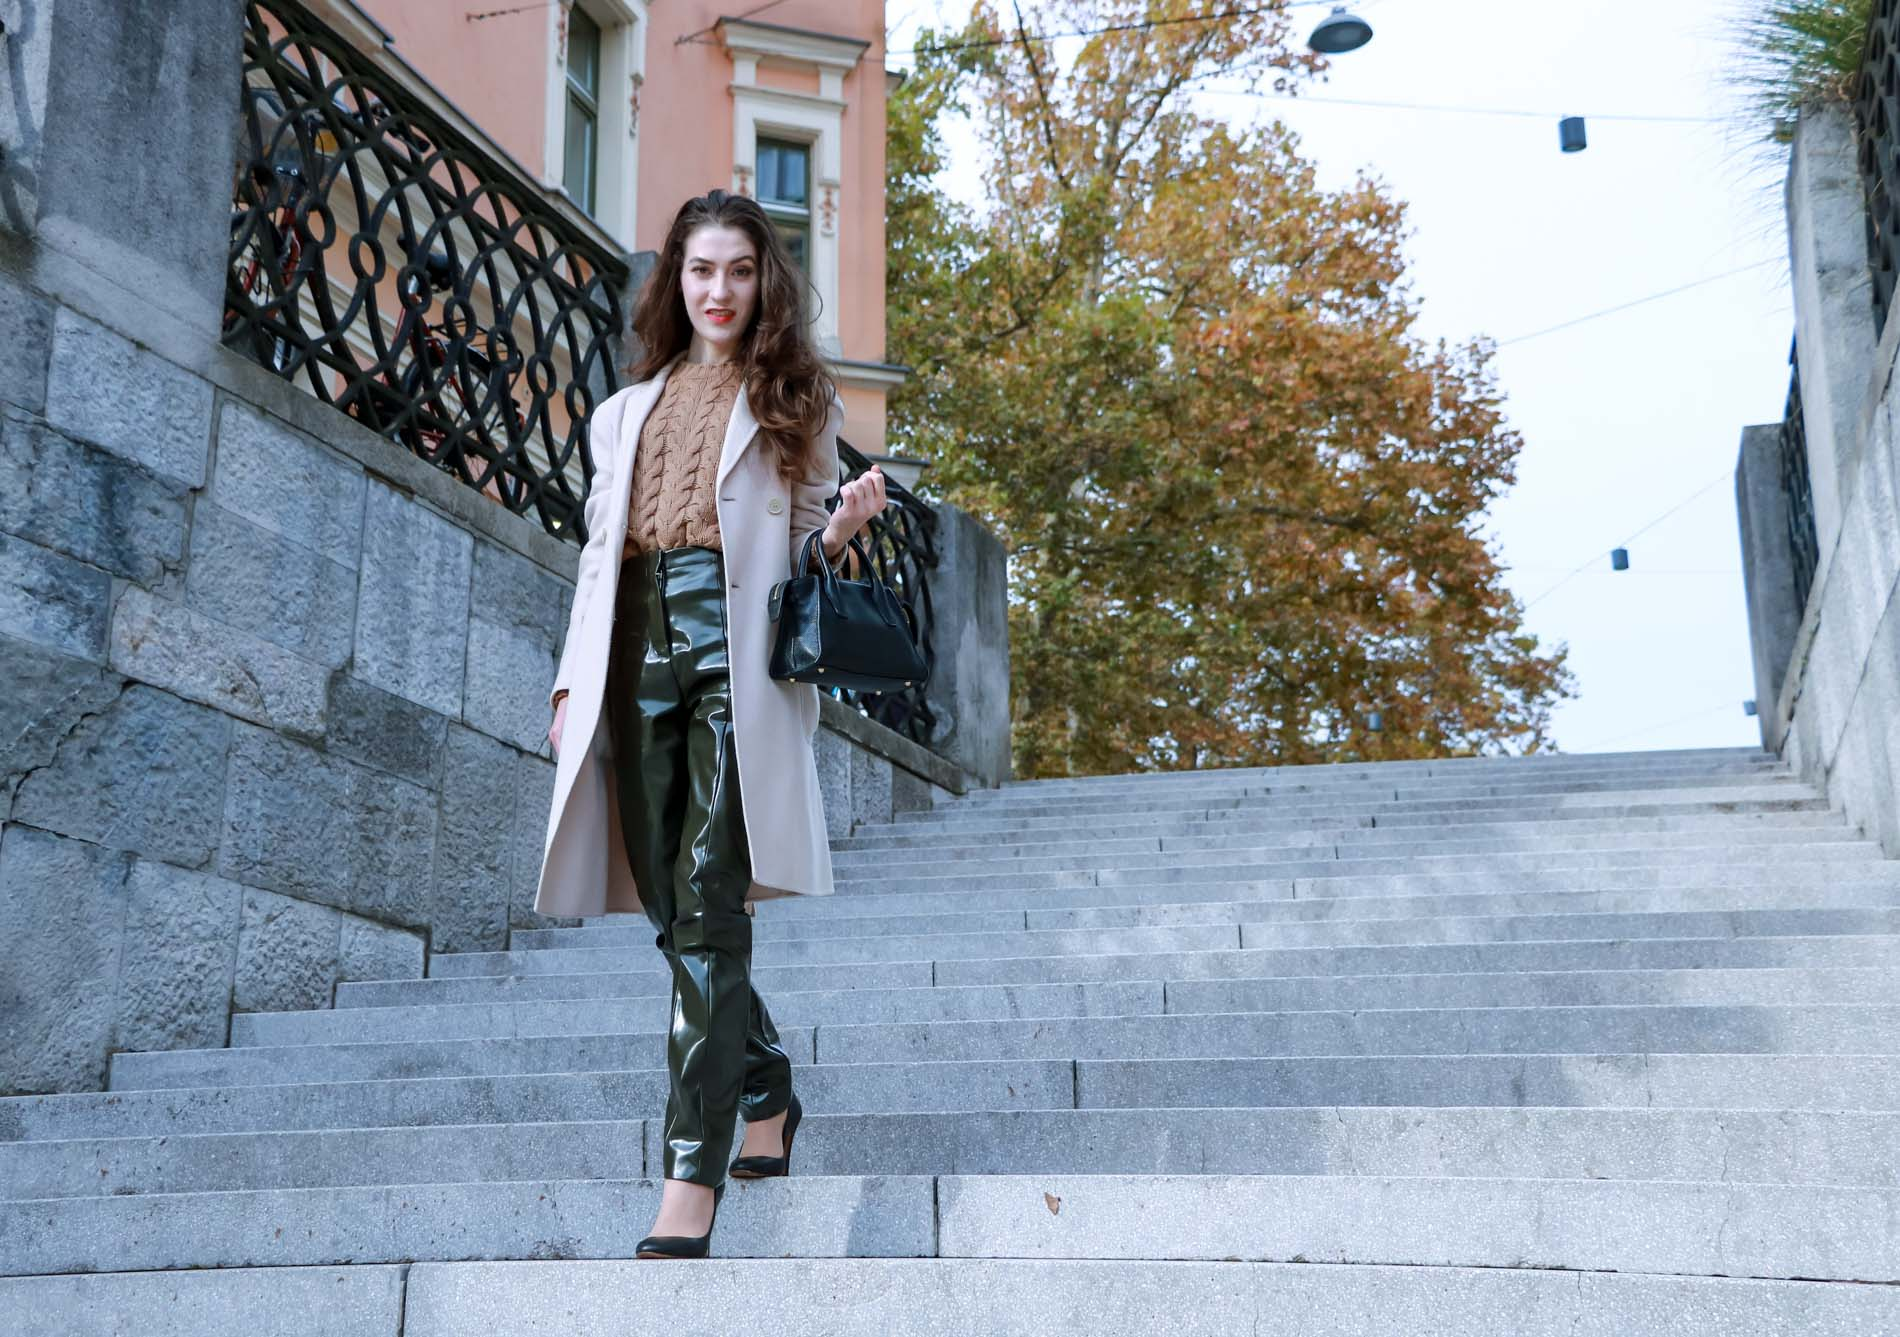 Fashion Blogger Veronika Lipar of Brunette from Wall Street dressed in Acne Studios high-shine pants, Weekened Maxmara double breasted pastel coat, Max Mara camel cable knit sweater and black Aquazzura pumps as chic business outfit